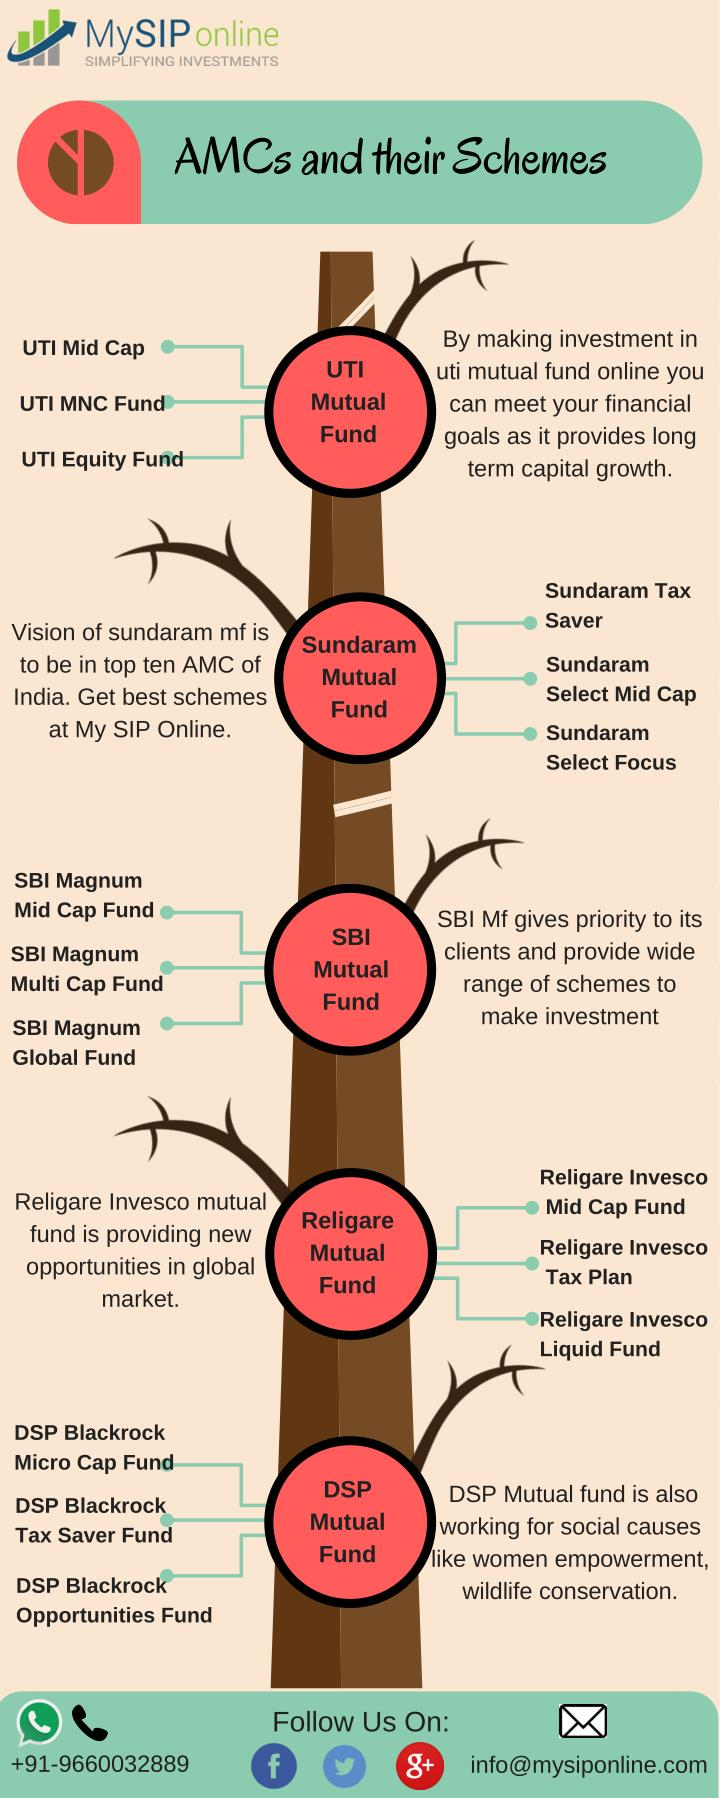 AMCs and their Schemes